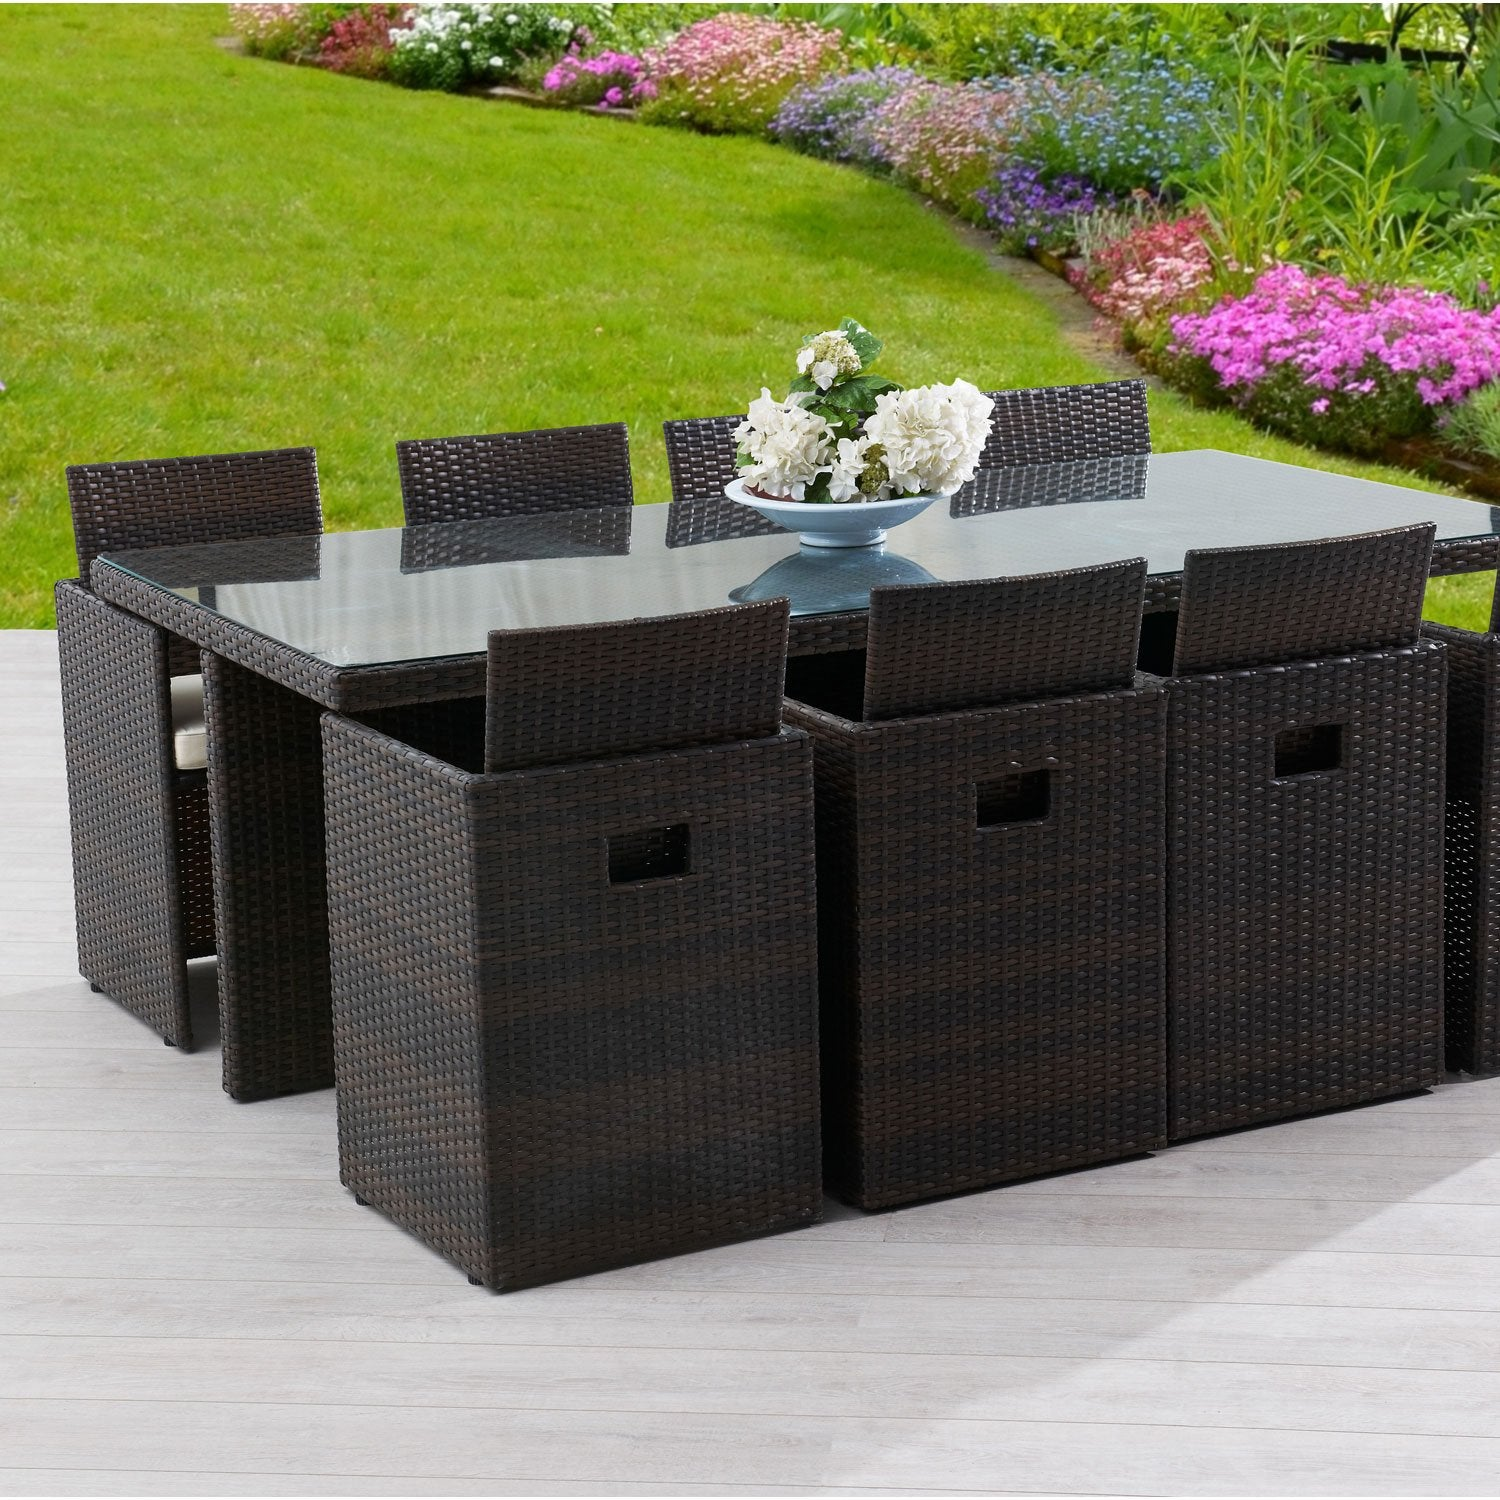 Salon de jardin encastrable dcb garden 1 table 8 for Ocultacion jardin leroy merlin